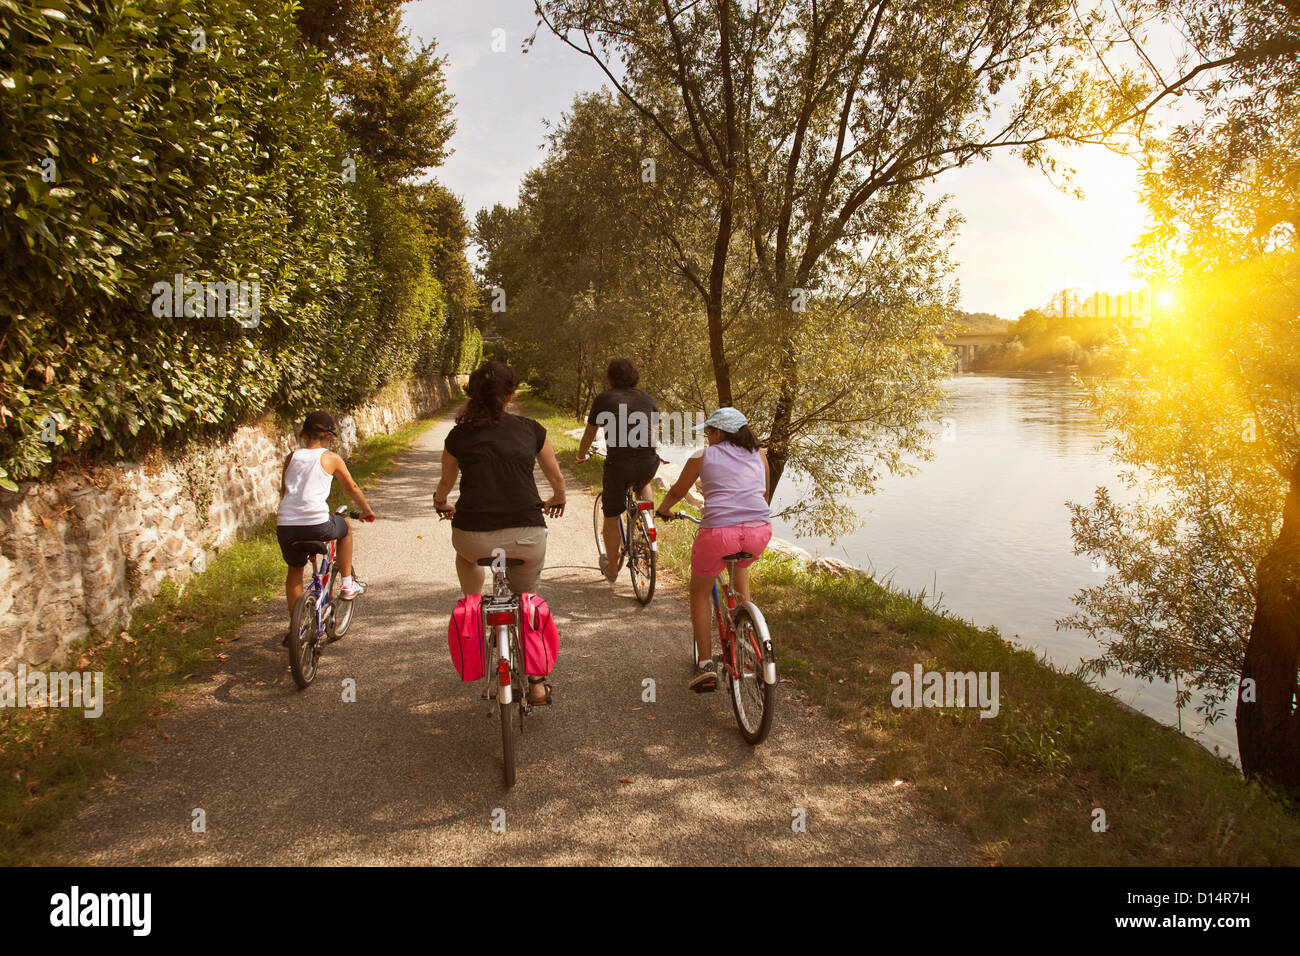 Family riding bicycles by river bank - Stock Image